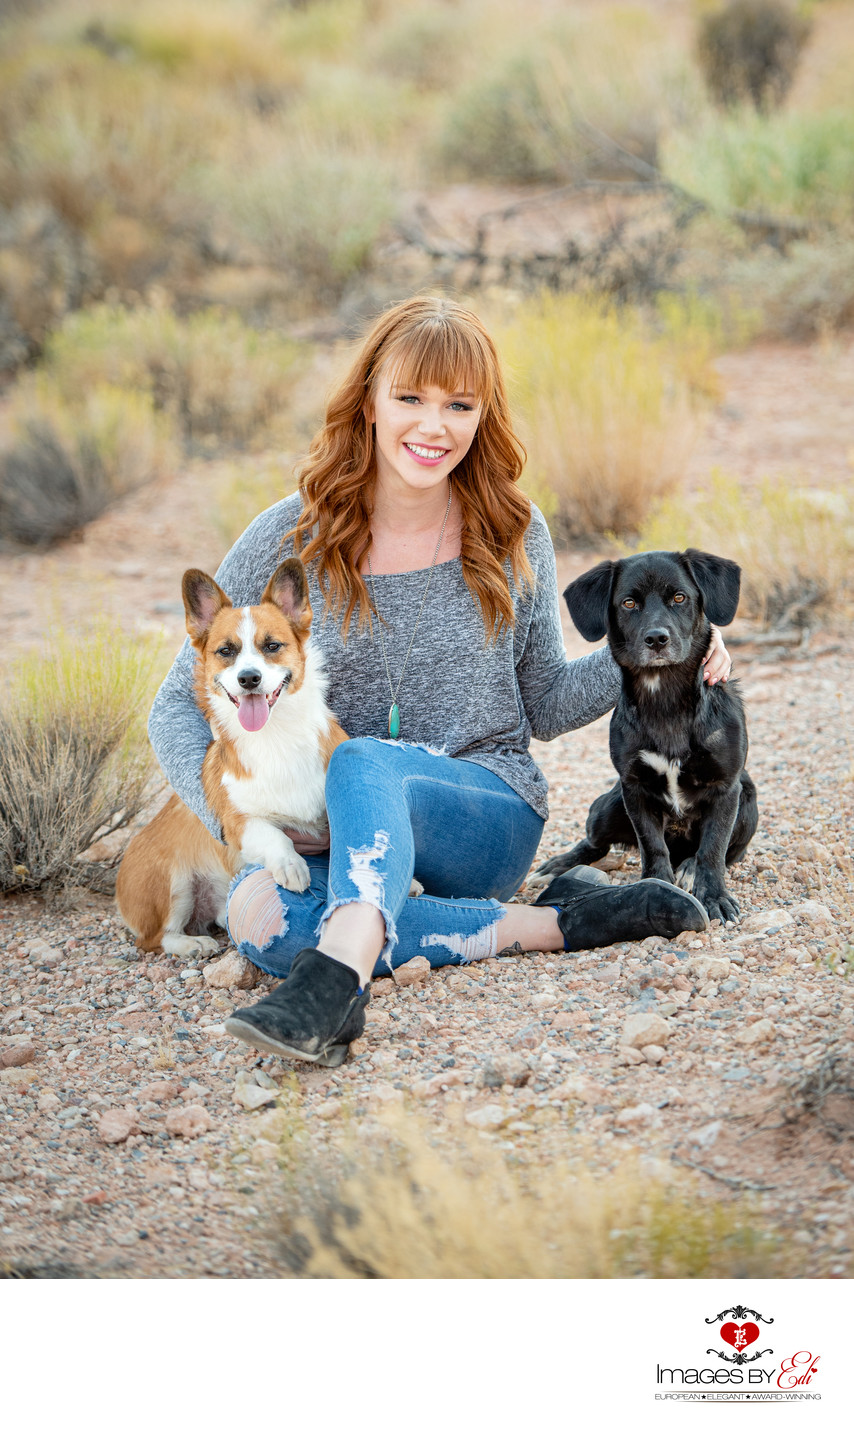 Las Vegas Family and Pet Photographer | Las Vegas Dog Photo session at Red Rock | Corgie | Girl With Her Corgis in the Las Vegas Desert | Images By EDI |